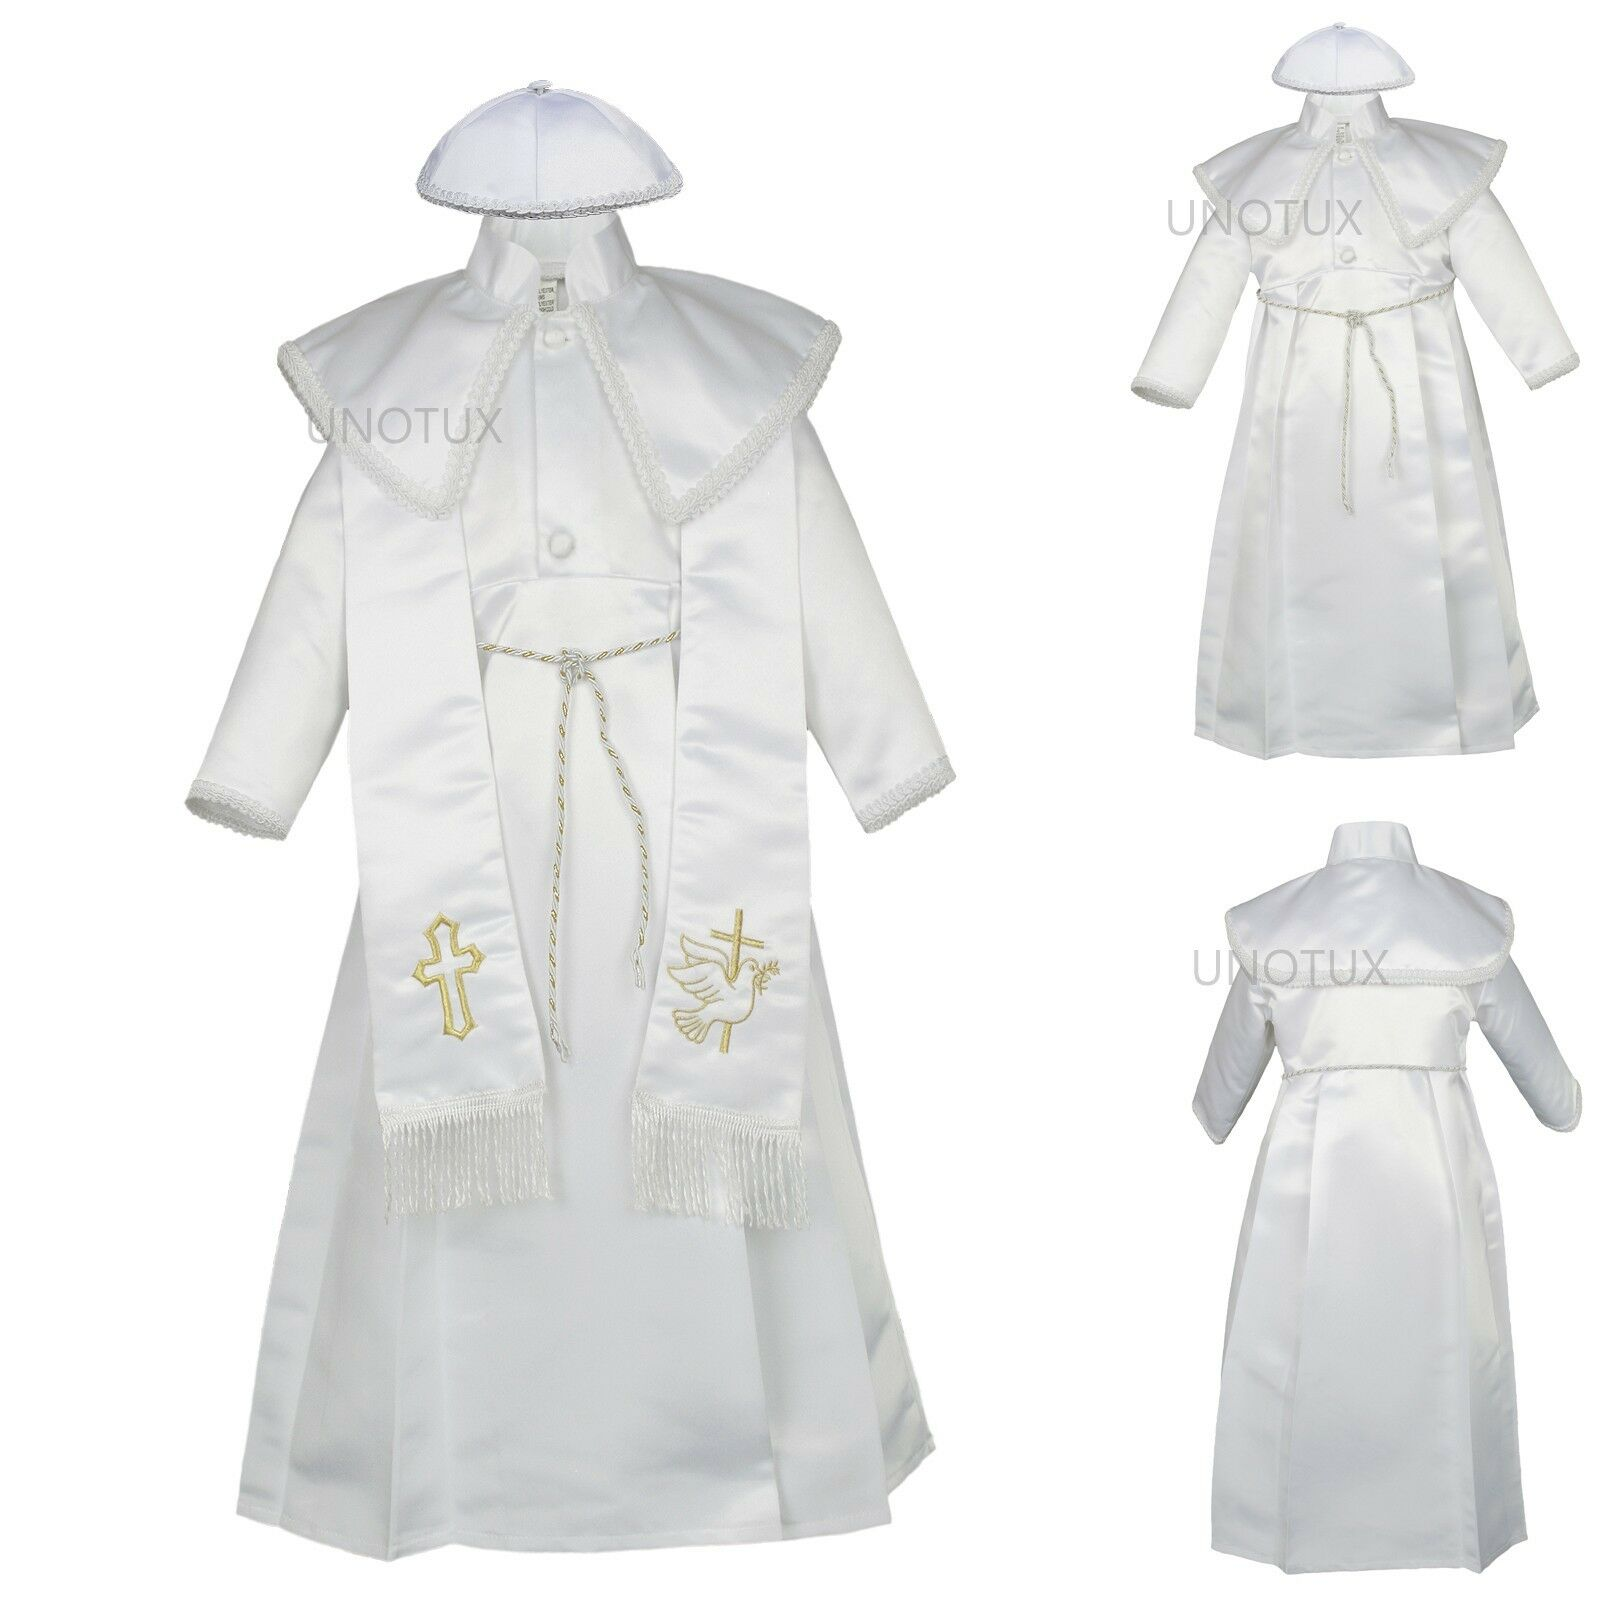 NEW BABY BOY Christening Baptism Gown Suit Outfit white sz:0,1,2,3,4 ...